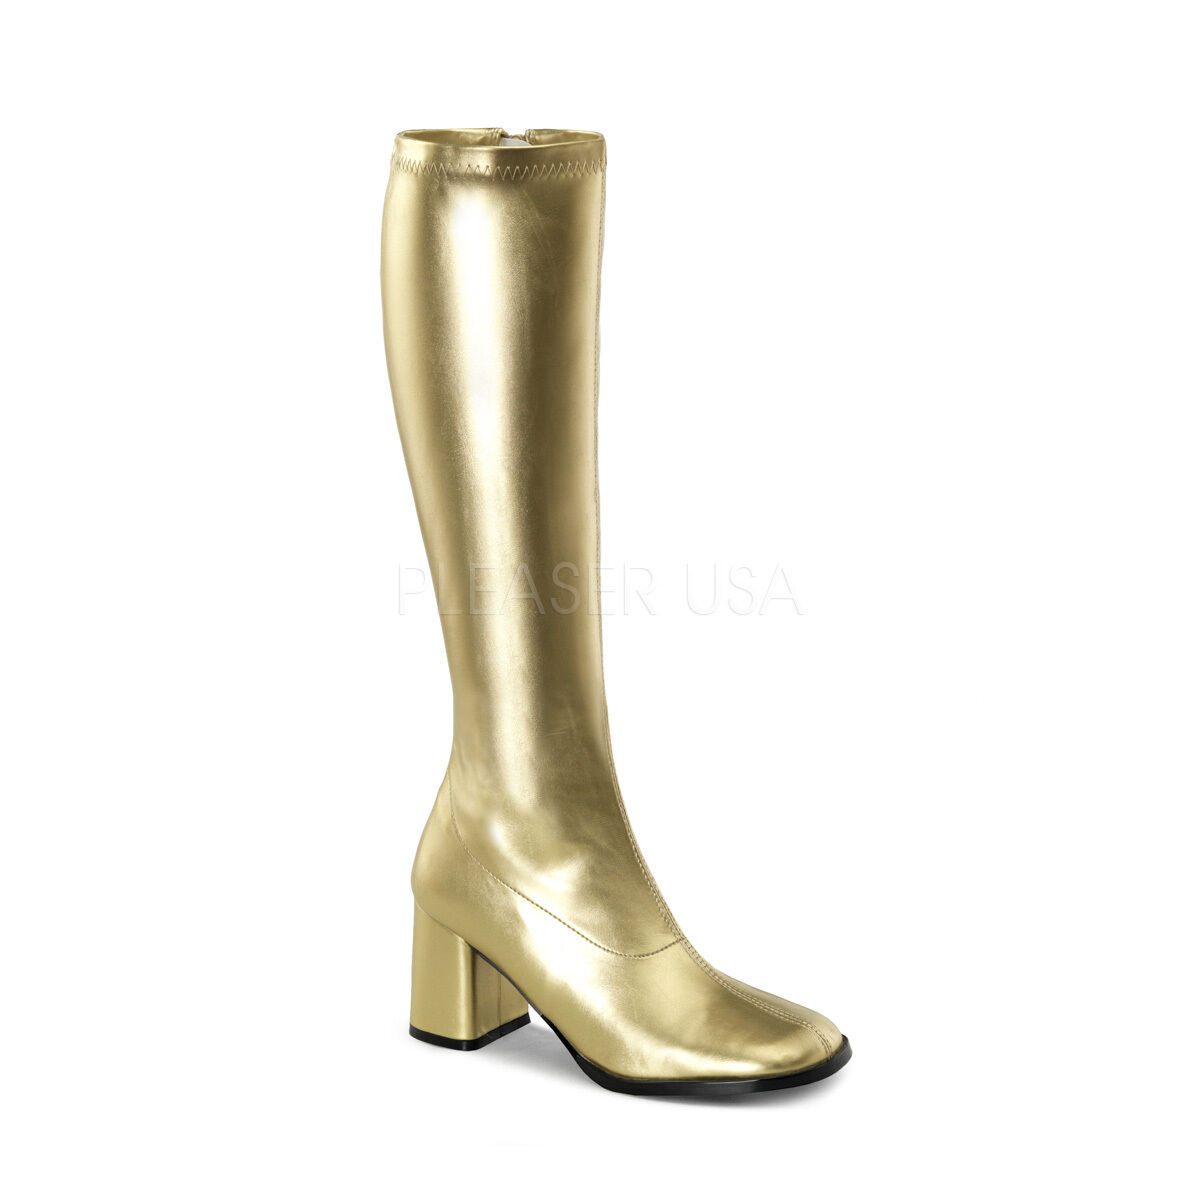 PLEASER FUNTASMA GOGO-300 GOLD PU BLOCK 70'S DISCO BLOCK PU HEEL KNEE HIGH BOOTS eed2f7